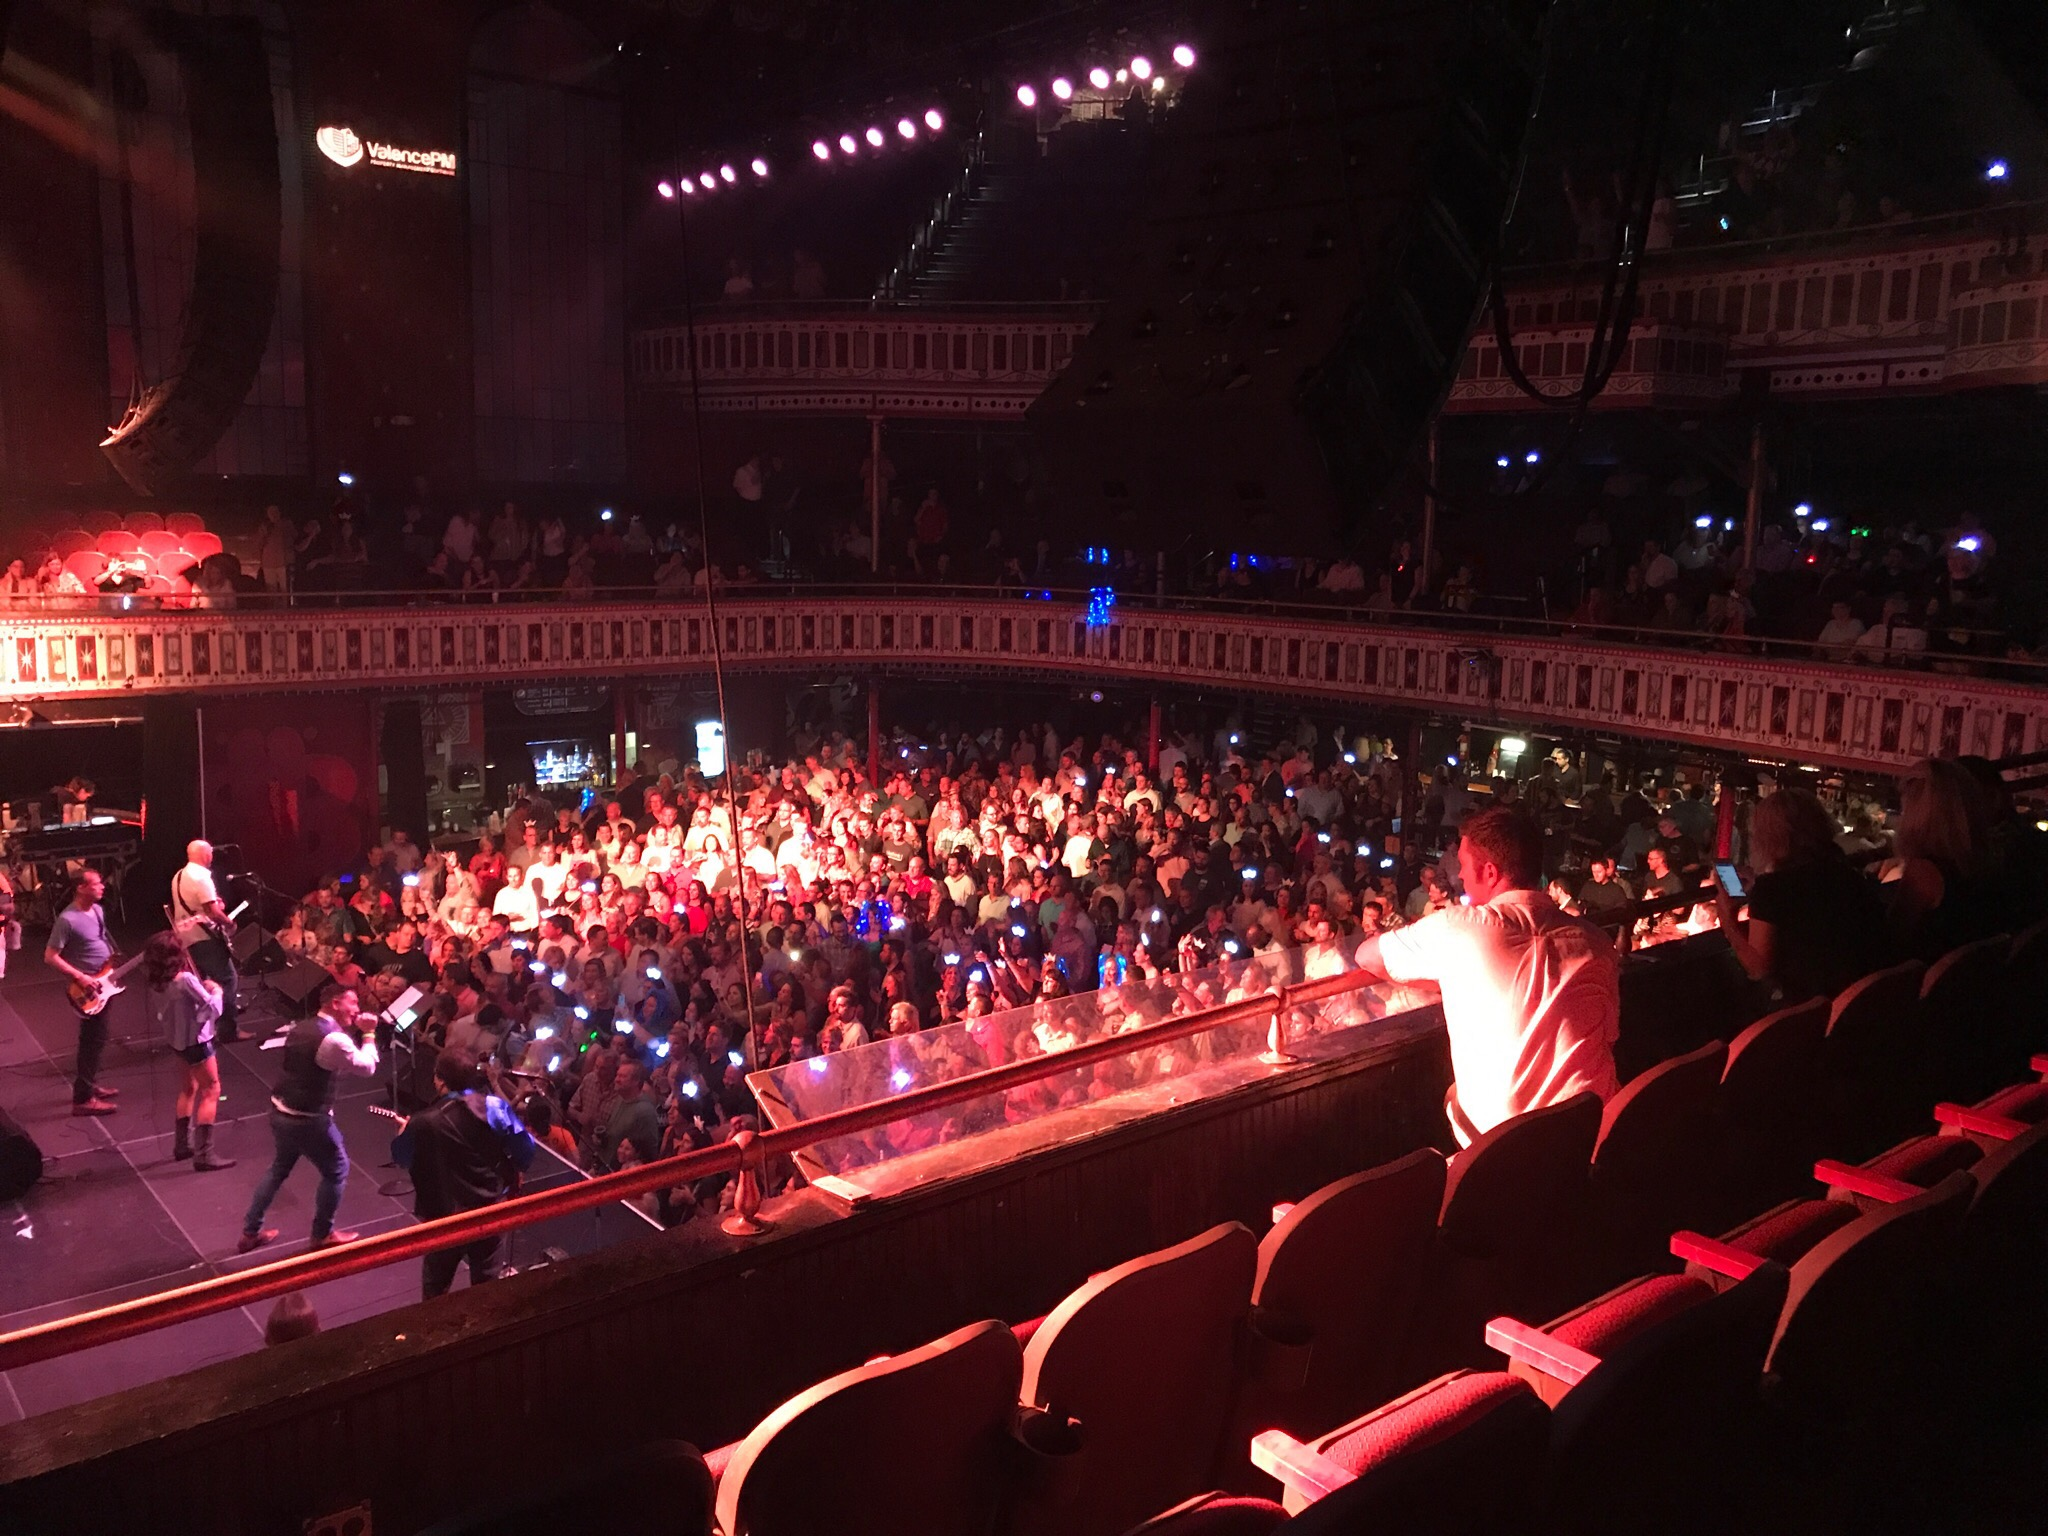 A full house (over 2,500 guests) at the 3 Dogwood Night concert at Tabernacle